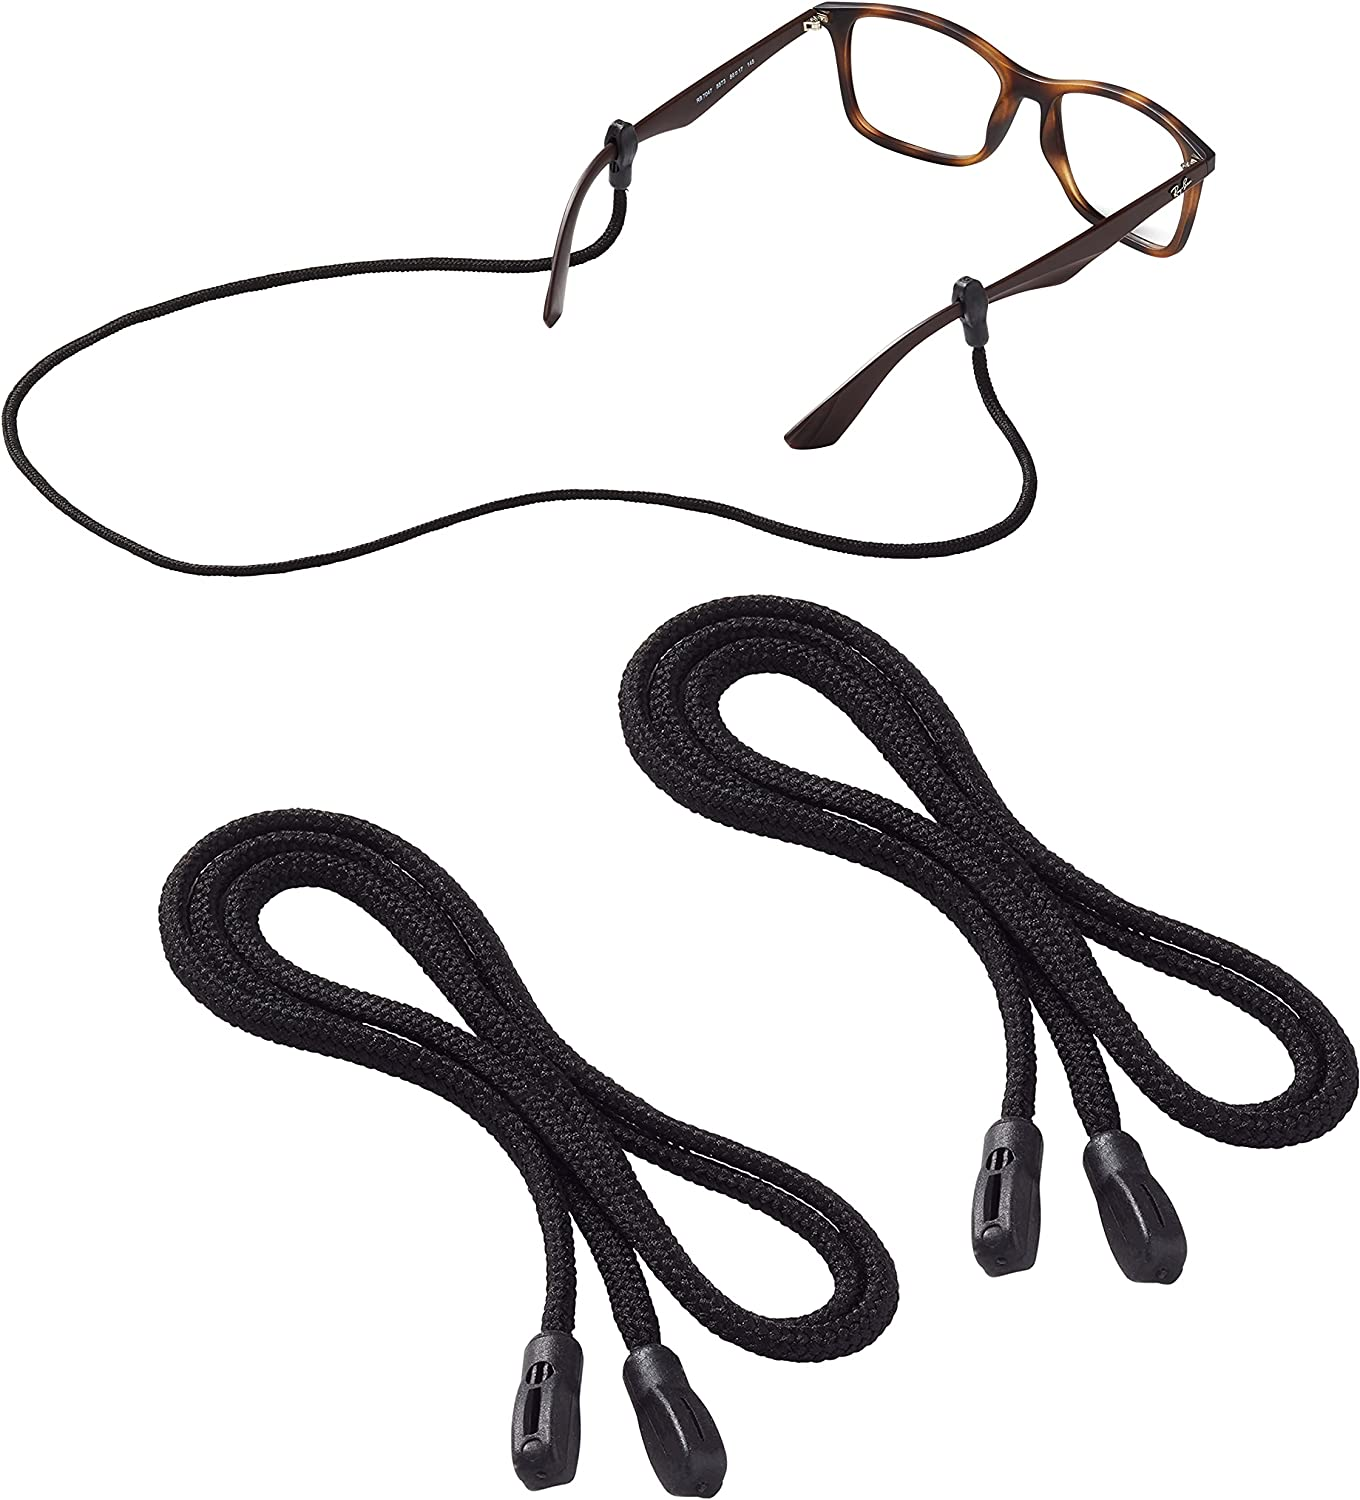 Peeper Keepers Max 51% OFF Eyeglass Retainer Clot w Microfiber Ranking TOP19 Supercord